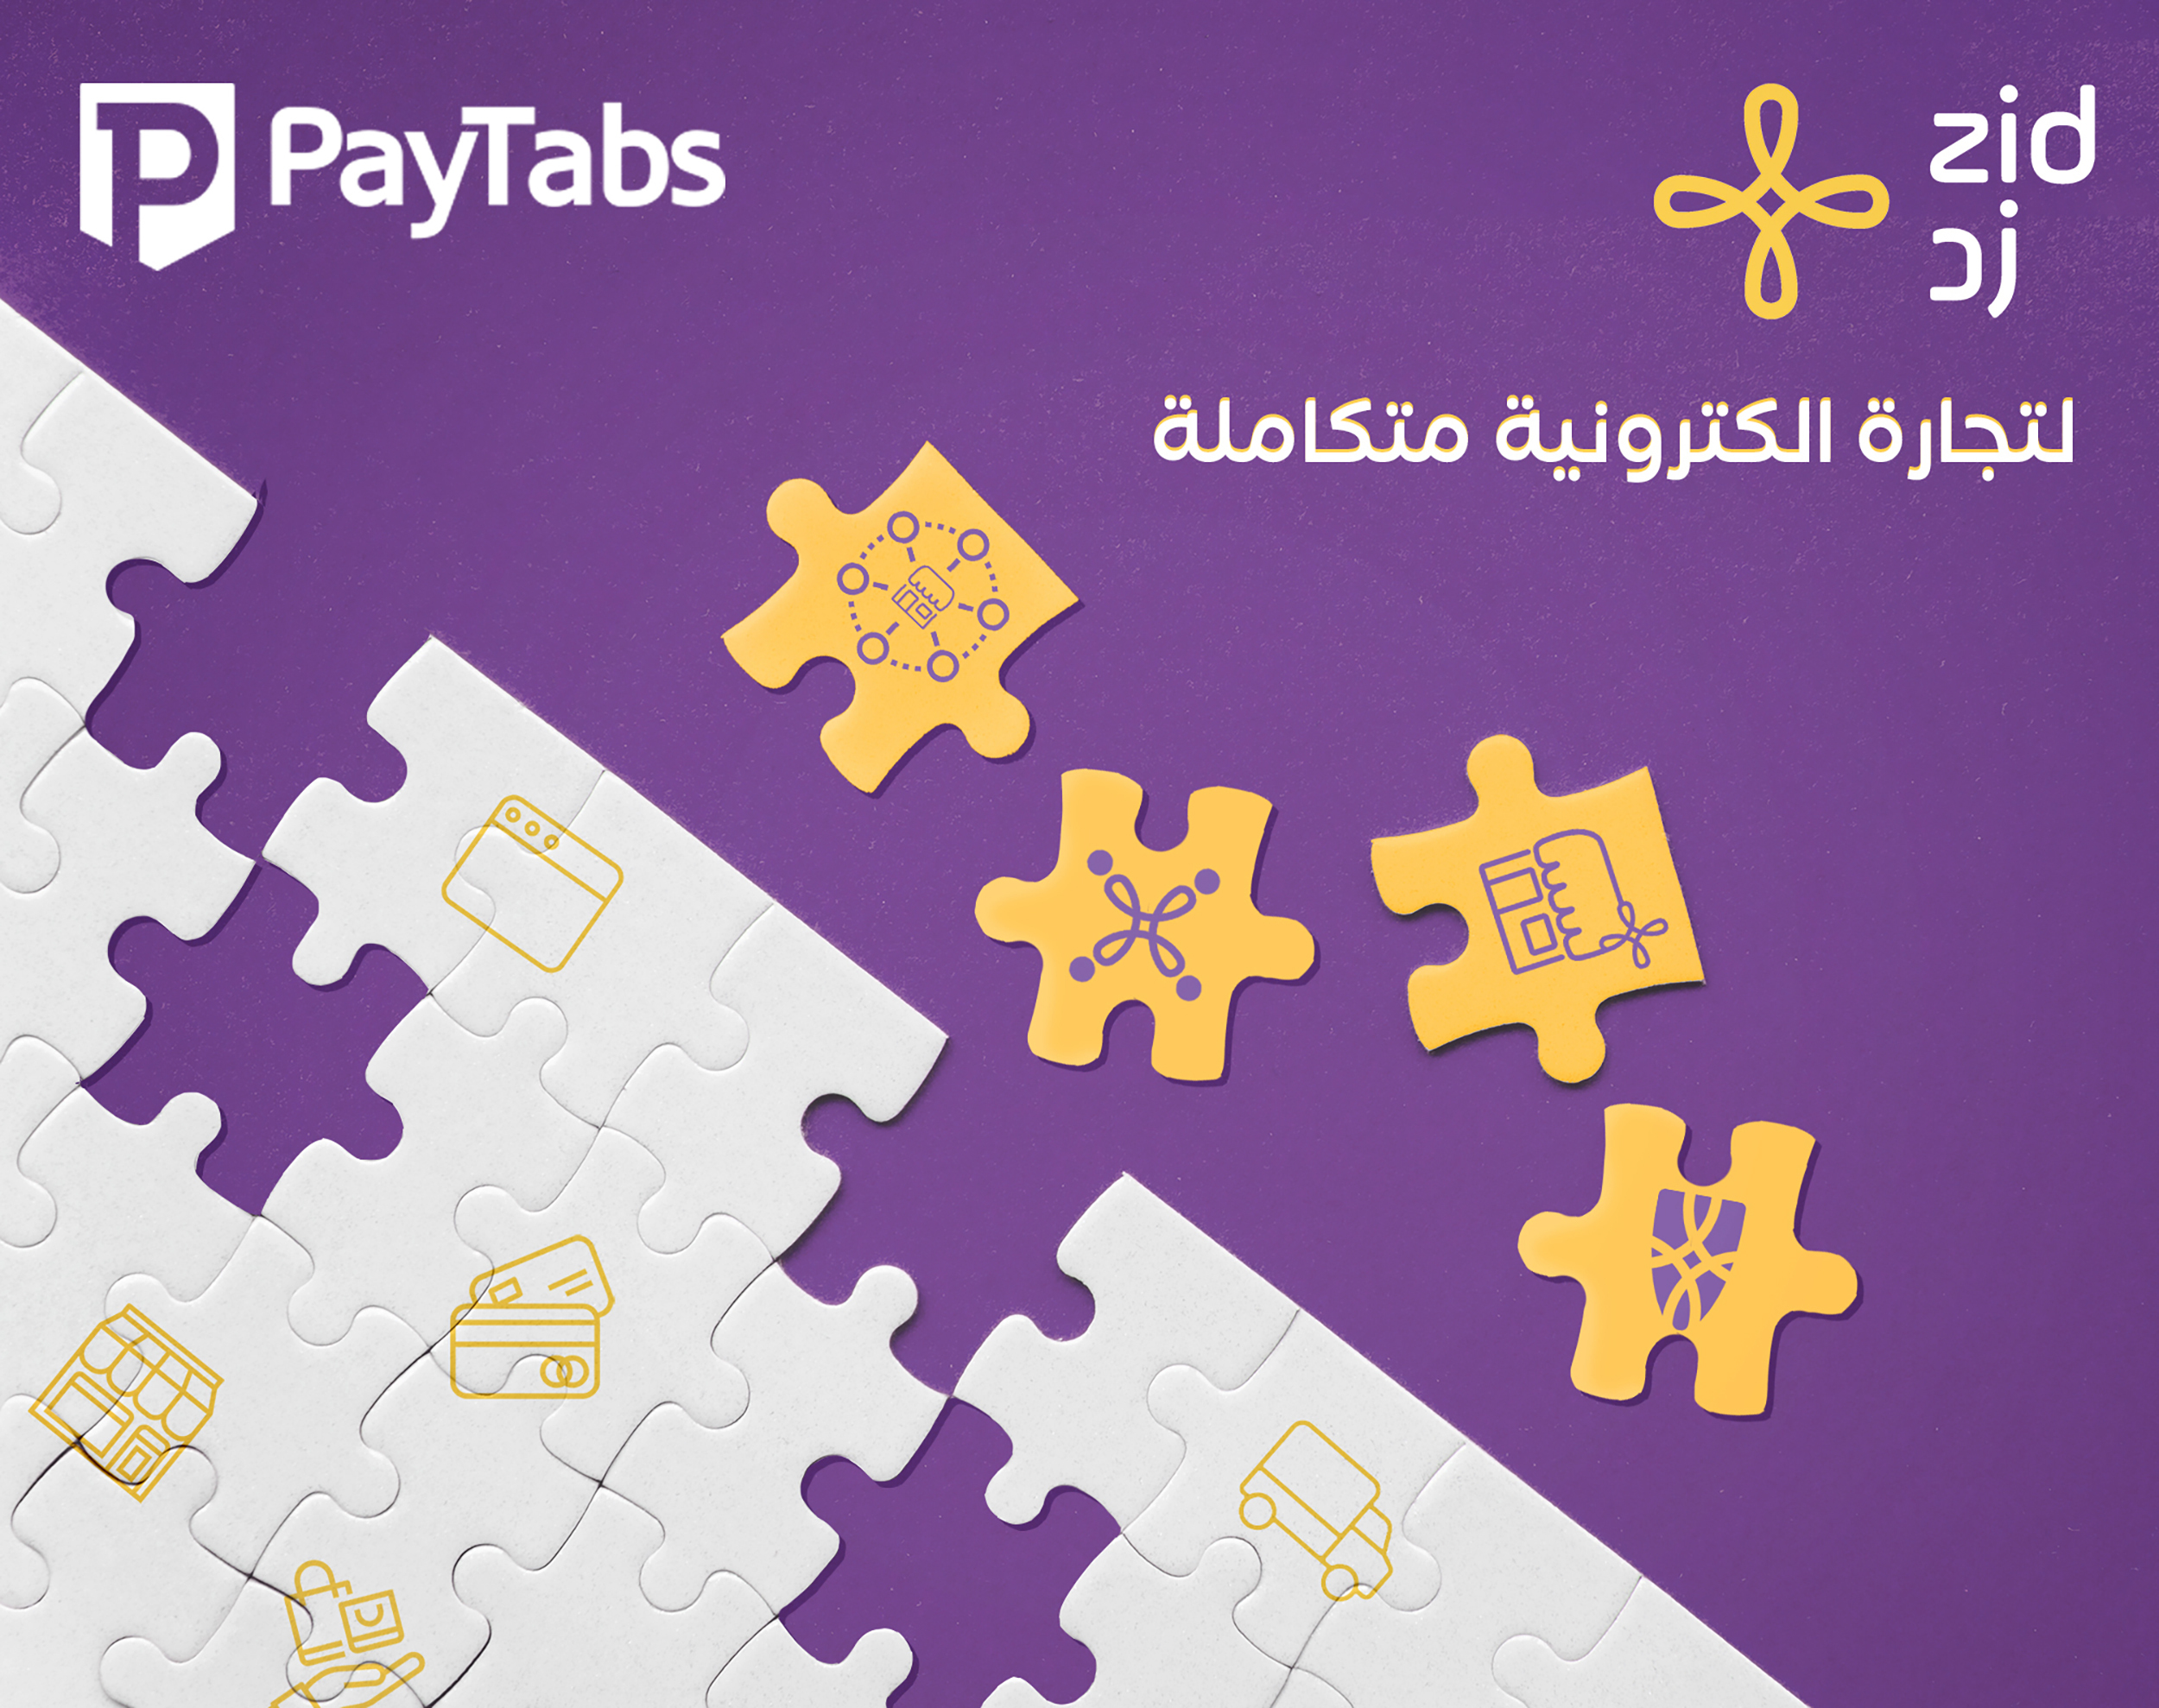 PayTabs-&-Zid-partner-for-integrated-e-commerce